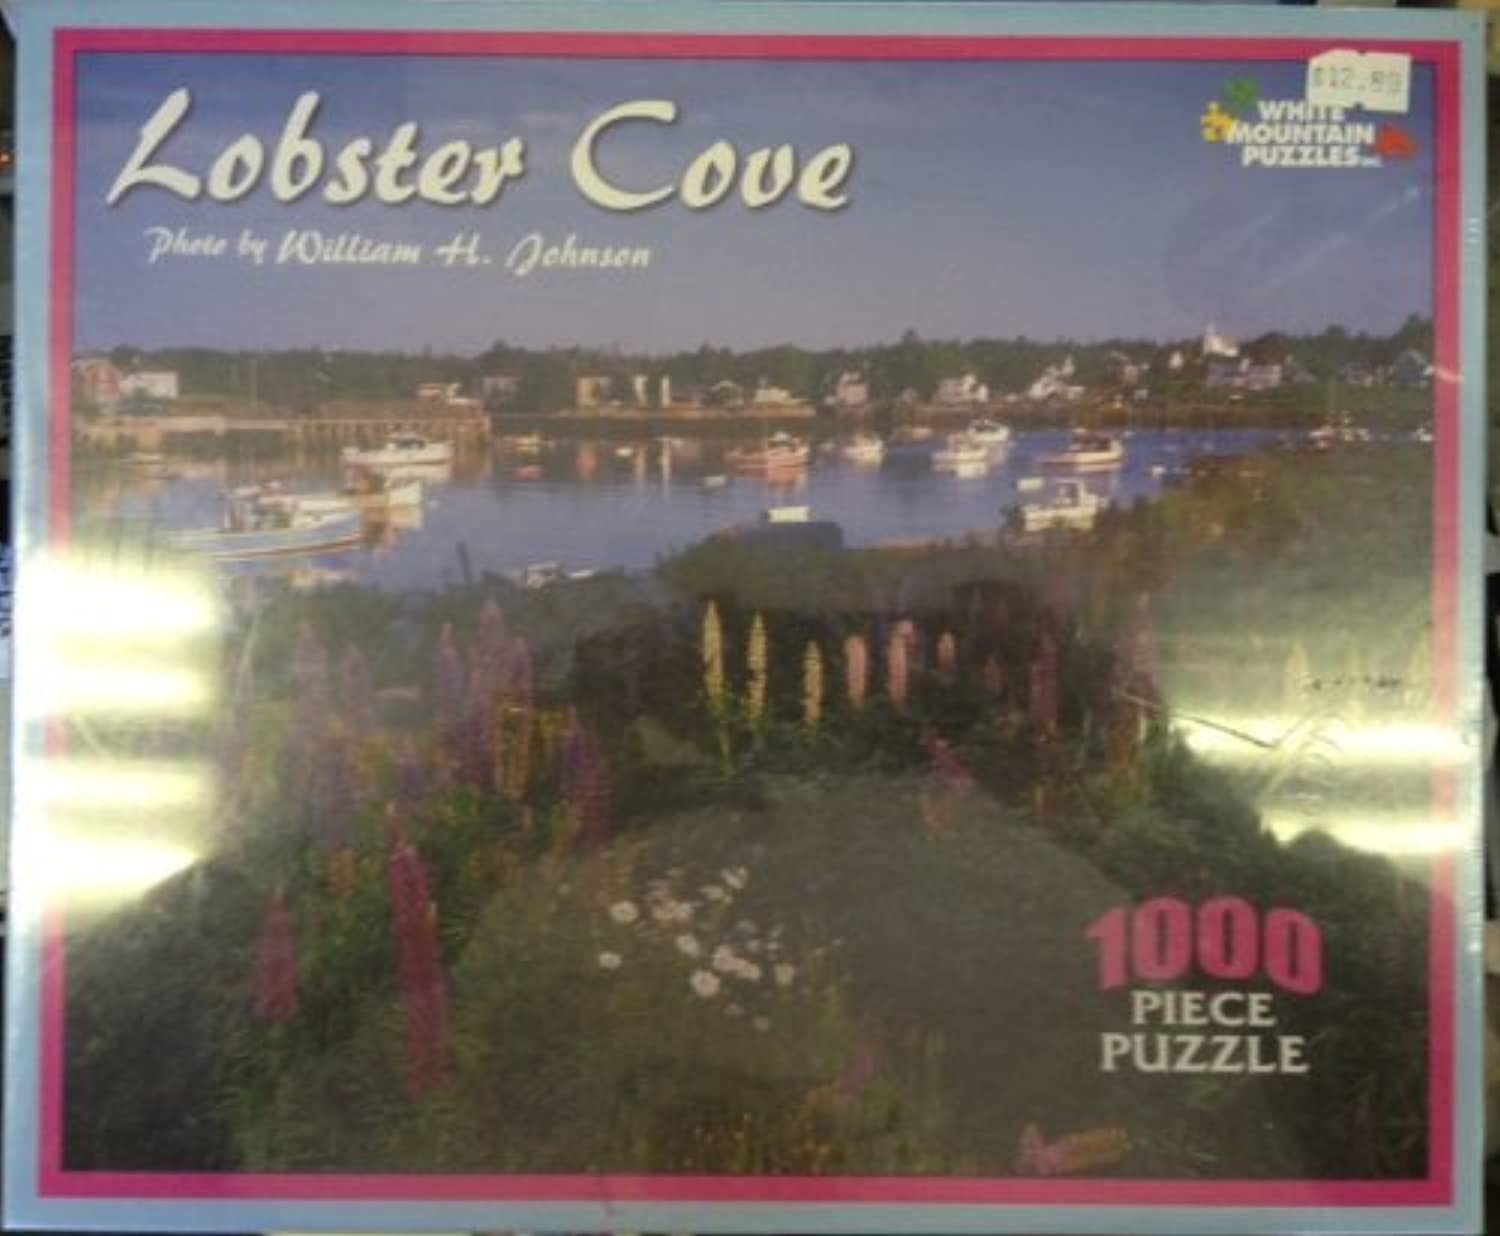 Lobster Cove by White Mountain